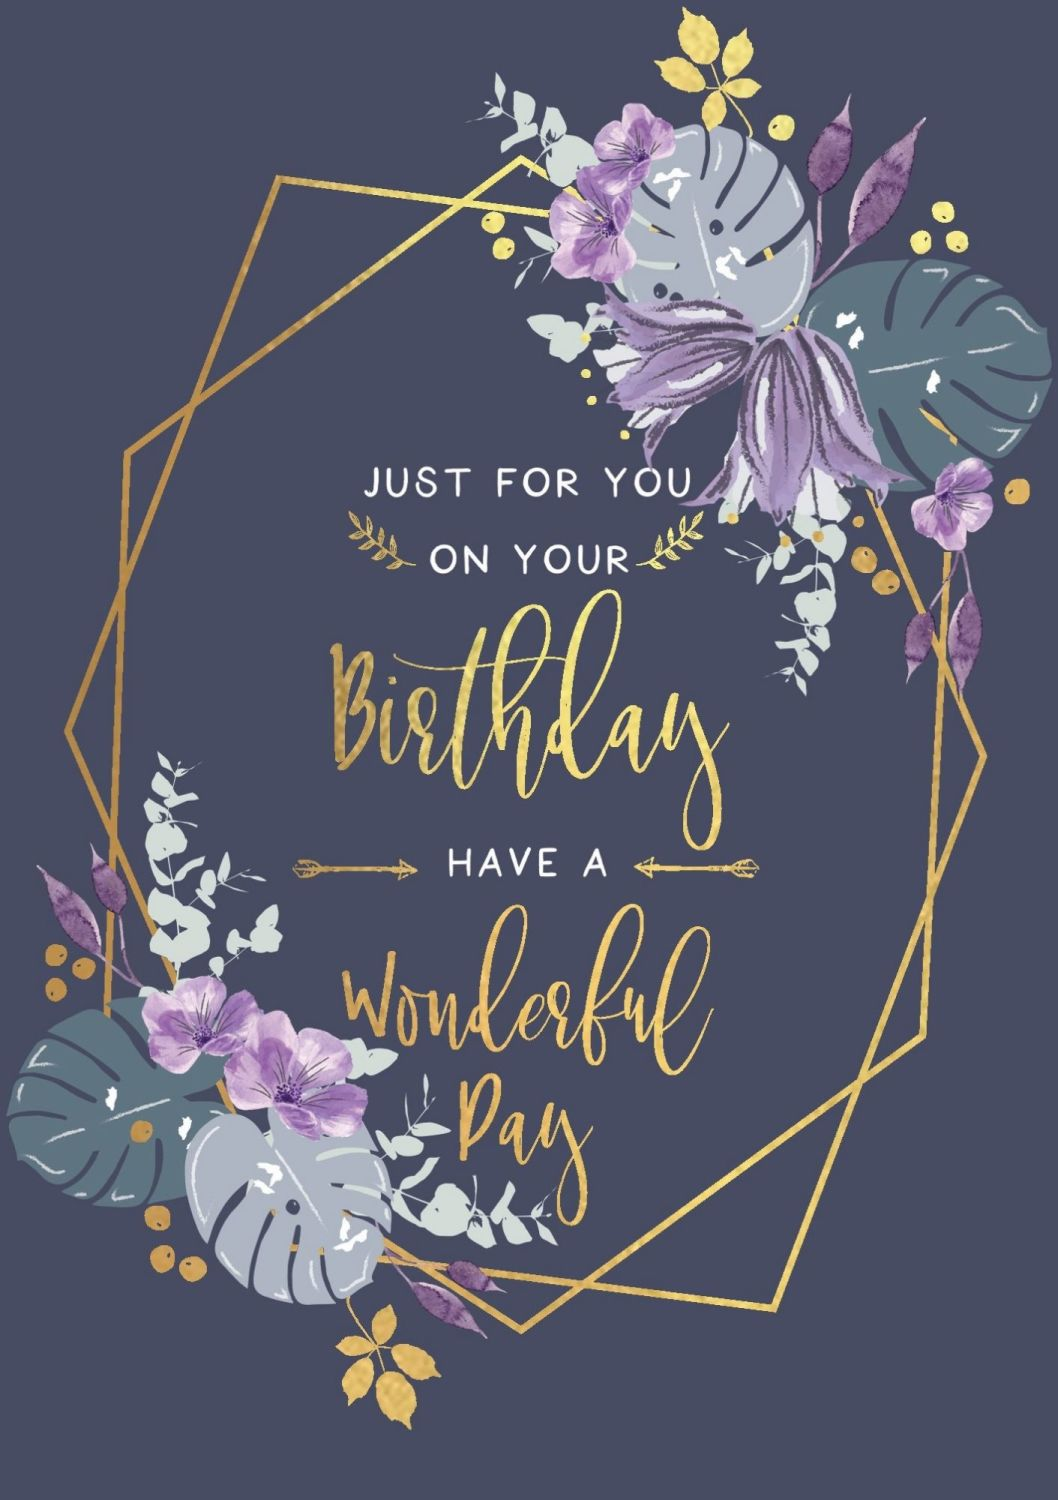 have a wonderful day birthday card  just for you